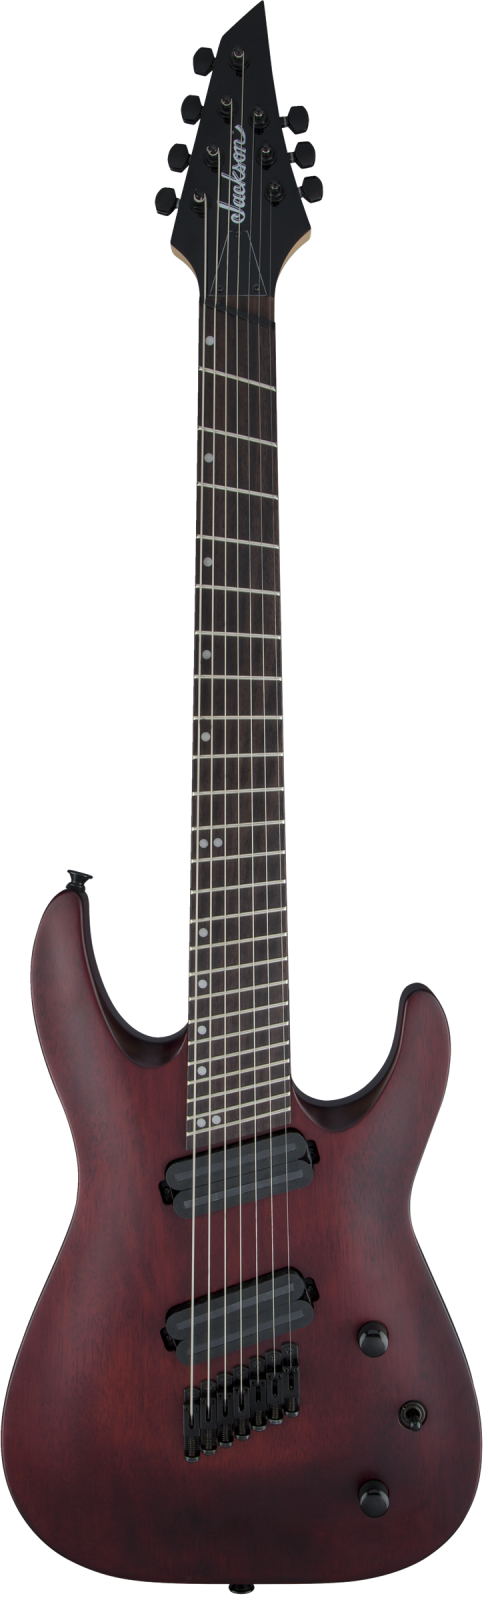 Jackson X Series Dinky  Arch Top DKAF7 MS, Laurel Fingerboard, Multi-Scale, Stained Mahogany